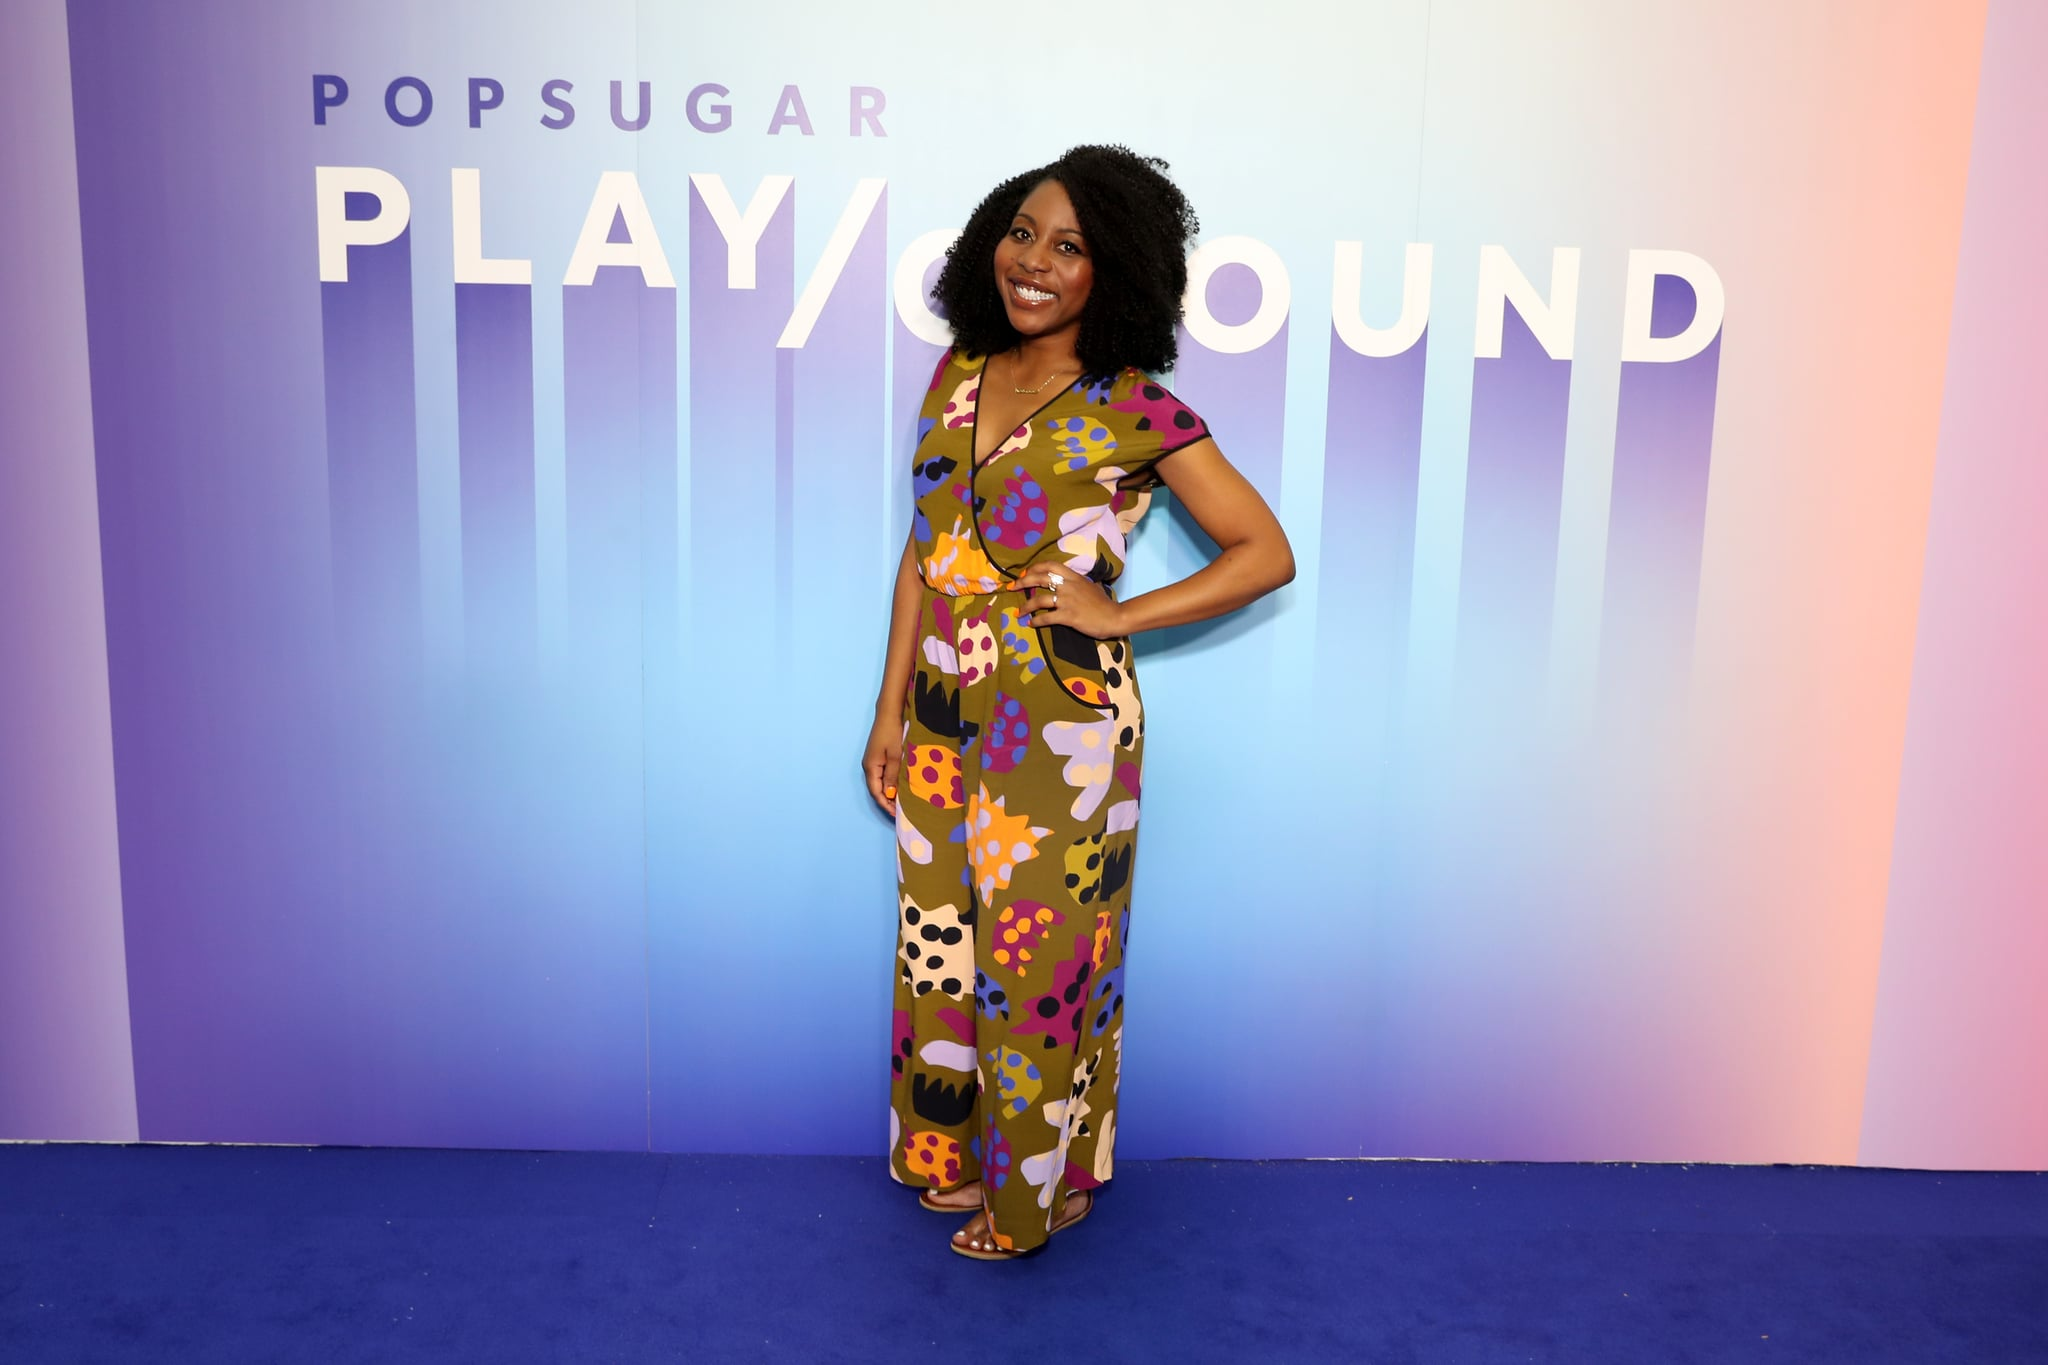 NEW YORK, NEW YORK - JUNE 23: Amy Aniobi attends the POPSUGAR Play/Ground at Pier 94 on June 23, 2019 in New York City. (Photo by Cindy Ord/Getty Images for POPSUGAR and Reed Exhibitions )